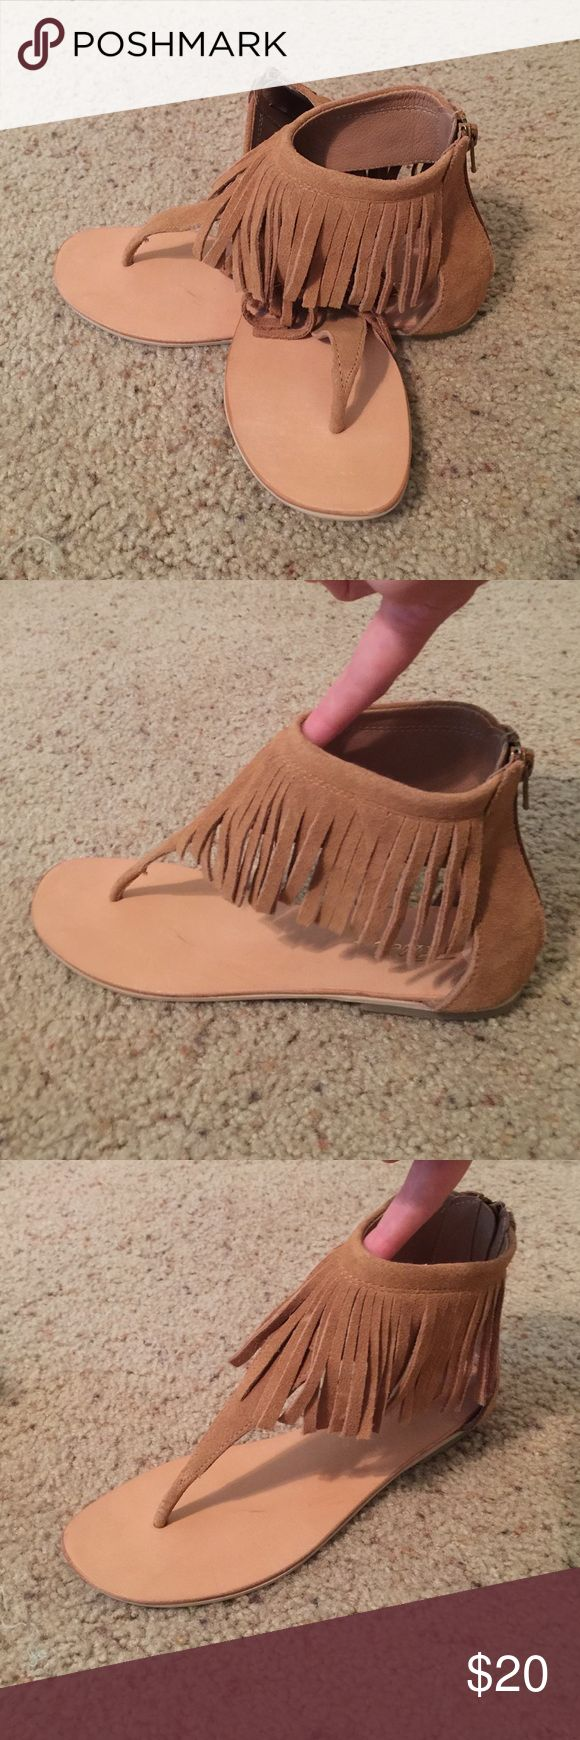 Women's Moccasin Sandals - NWB - Size 8 NWB Women's Size 8 moccasin sandals. Perfect condition. Shoes Sandals